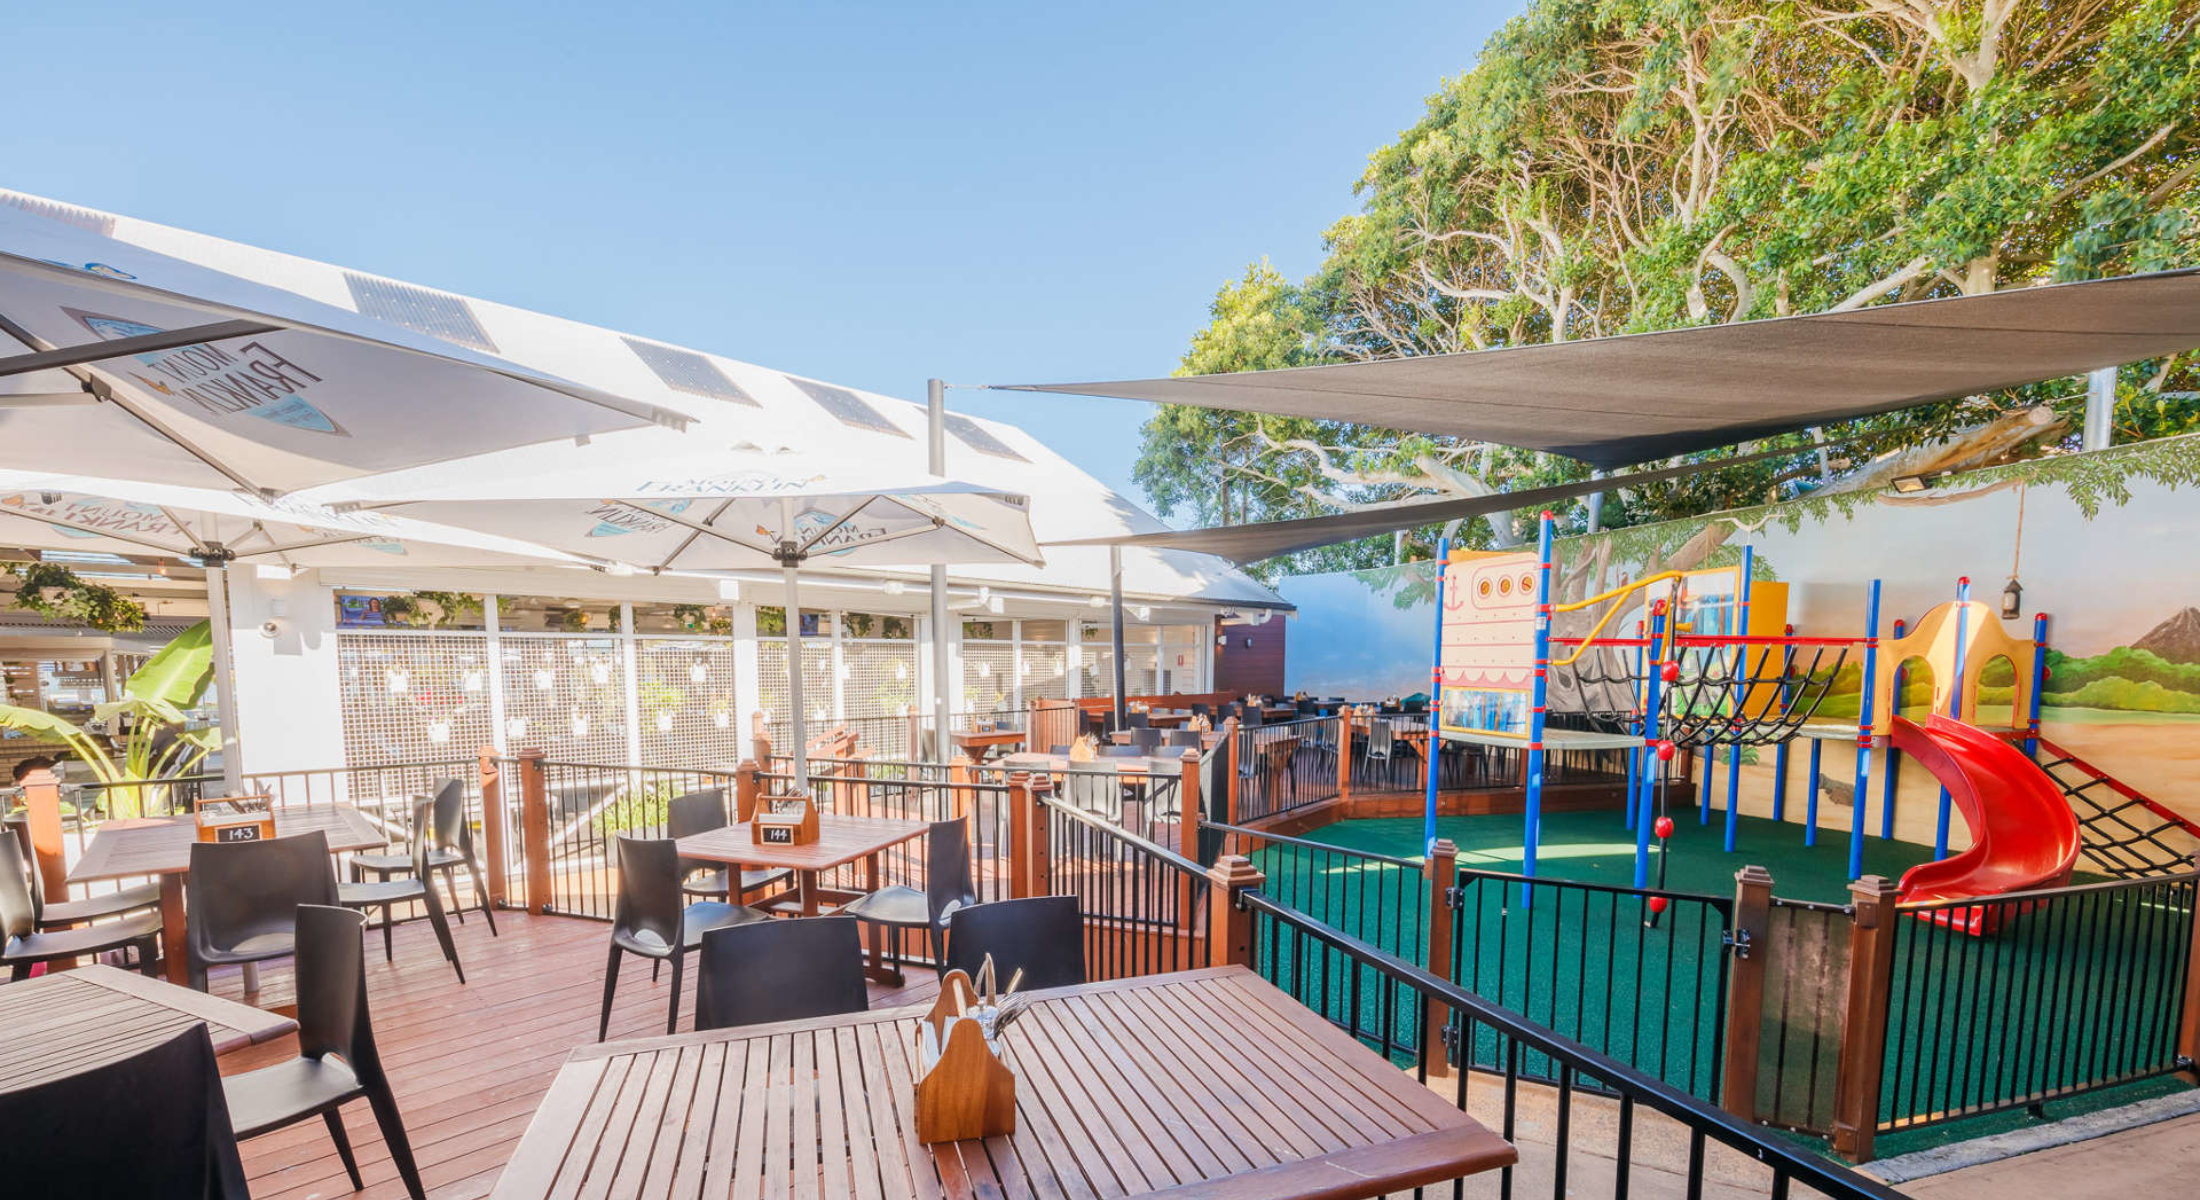 The Belvedere Hotel Moreton Bay Region Family Friendly Park Kids Meal